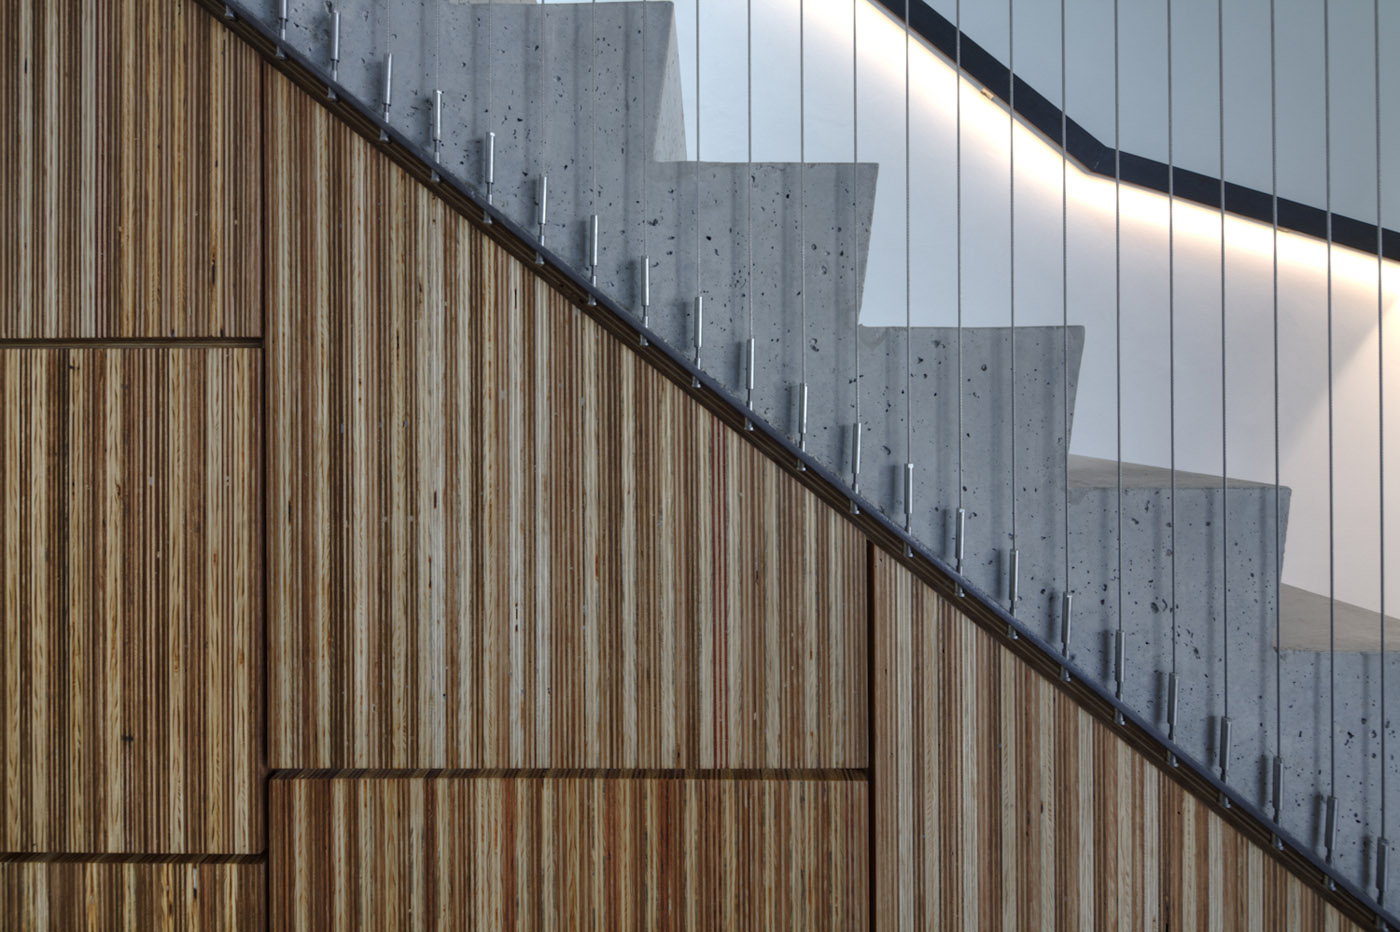 Newtown Terrace by award winning Sydney firm Sam Crawford Architects. Detail of concrete staircase with steel rods and timber cladding.